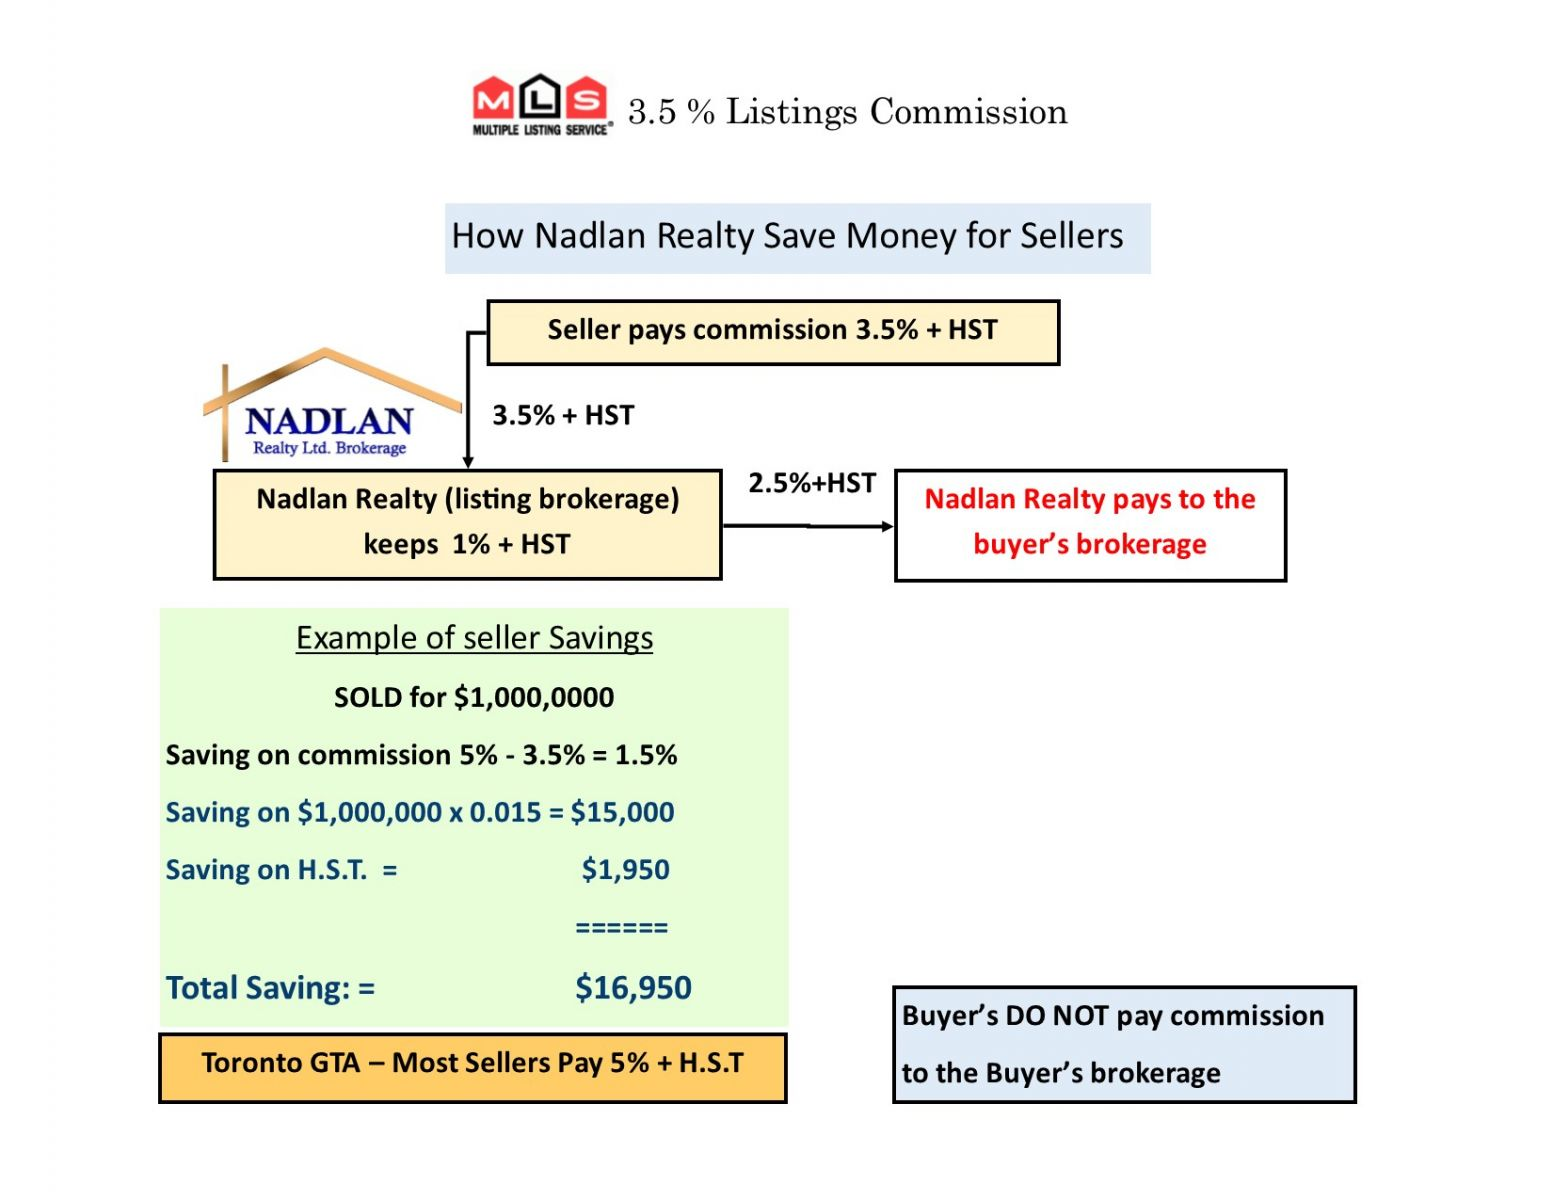 Nadlan realty 1$ MLS listing commission for seller